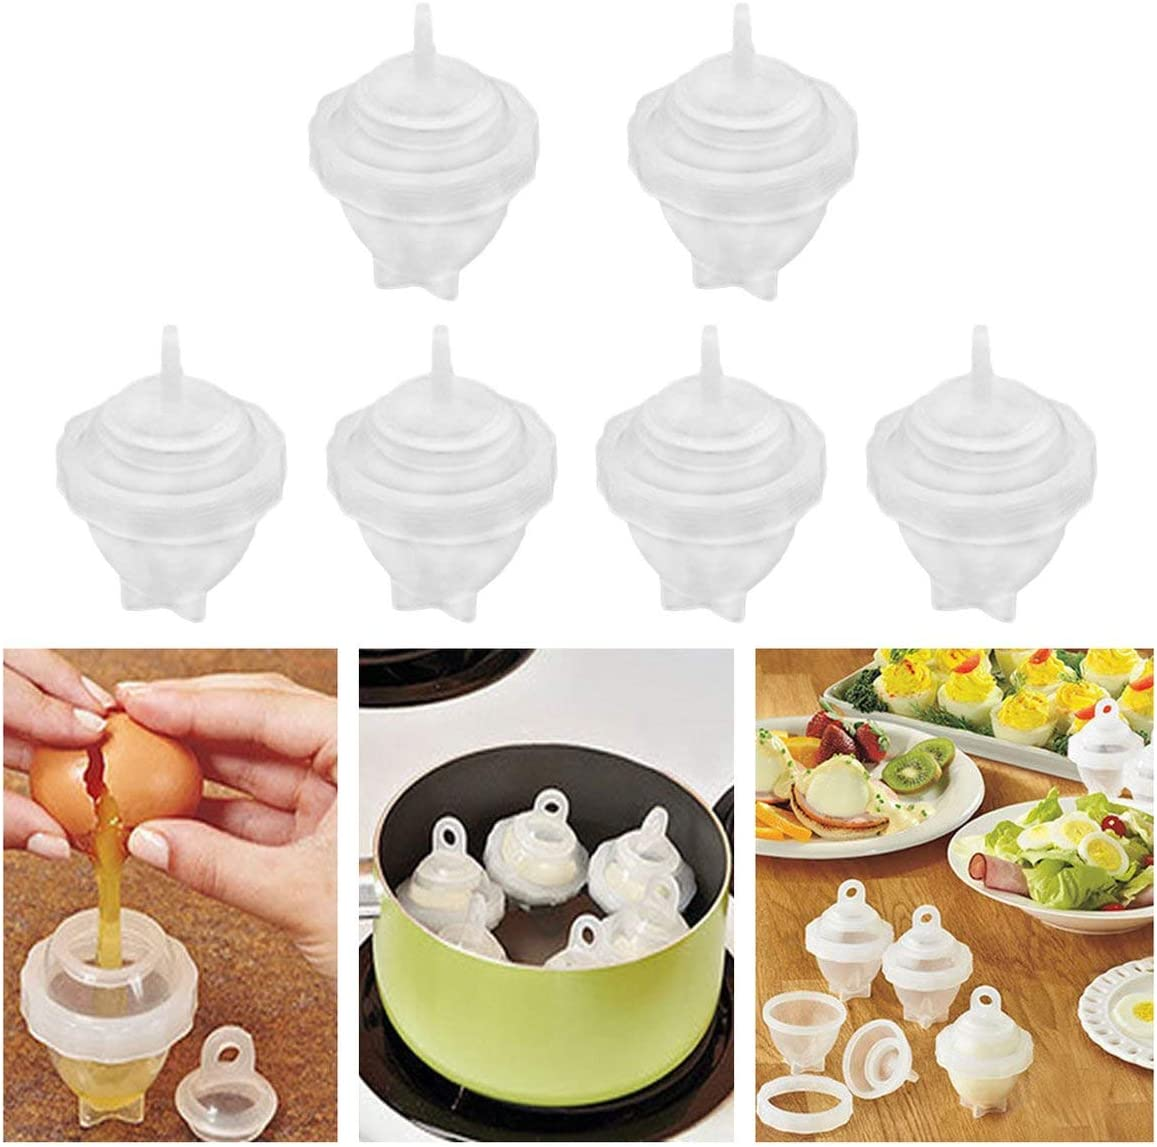 Noradtjcca Egg Cooker Egg Separator Egg Boiler Cup Egg Cooking Tools Hard Boiled Egg Without Shell Omelette Molds Fast Easy to Clean